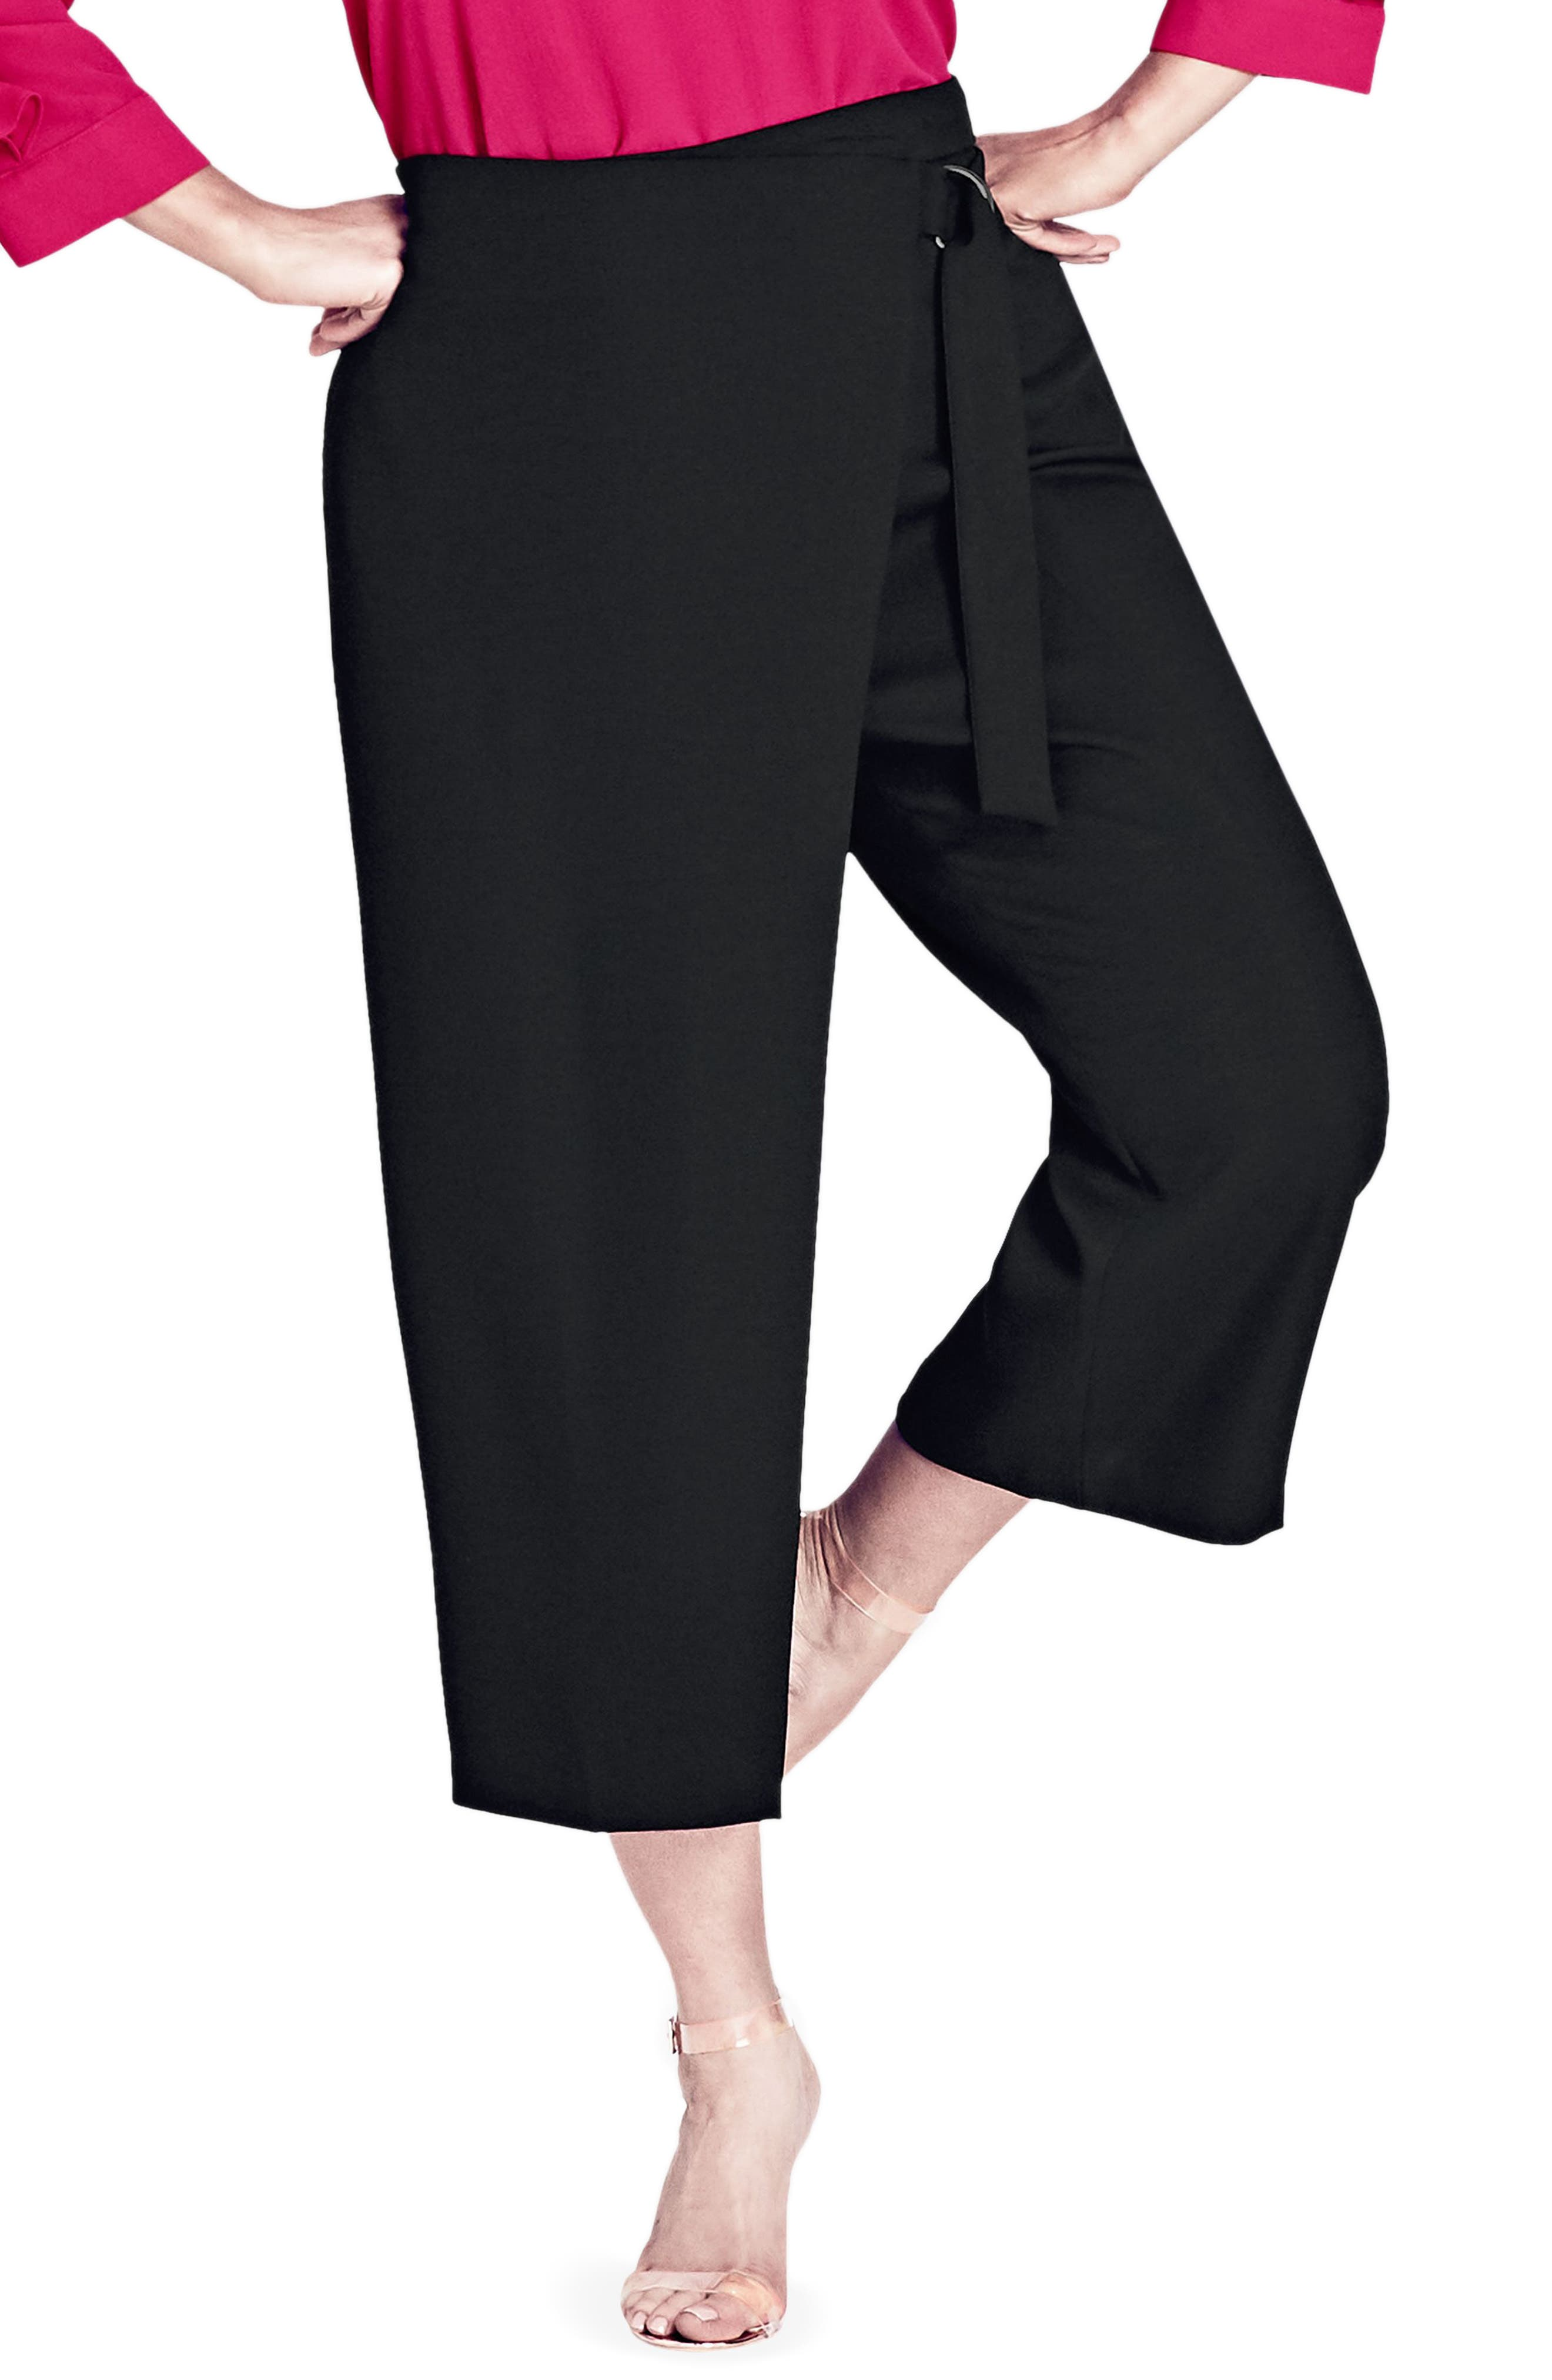 Alternate Image 1 Selected - City Chic Wrap Up Crop Pants (Plus Size)